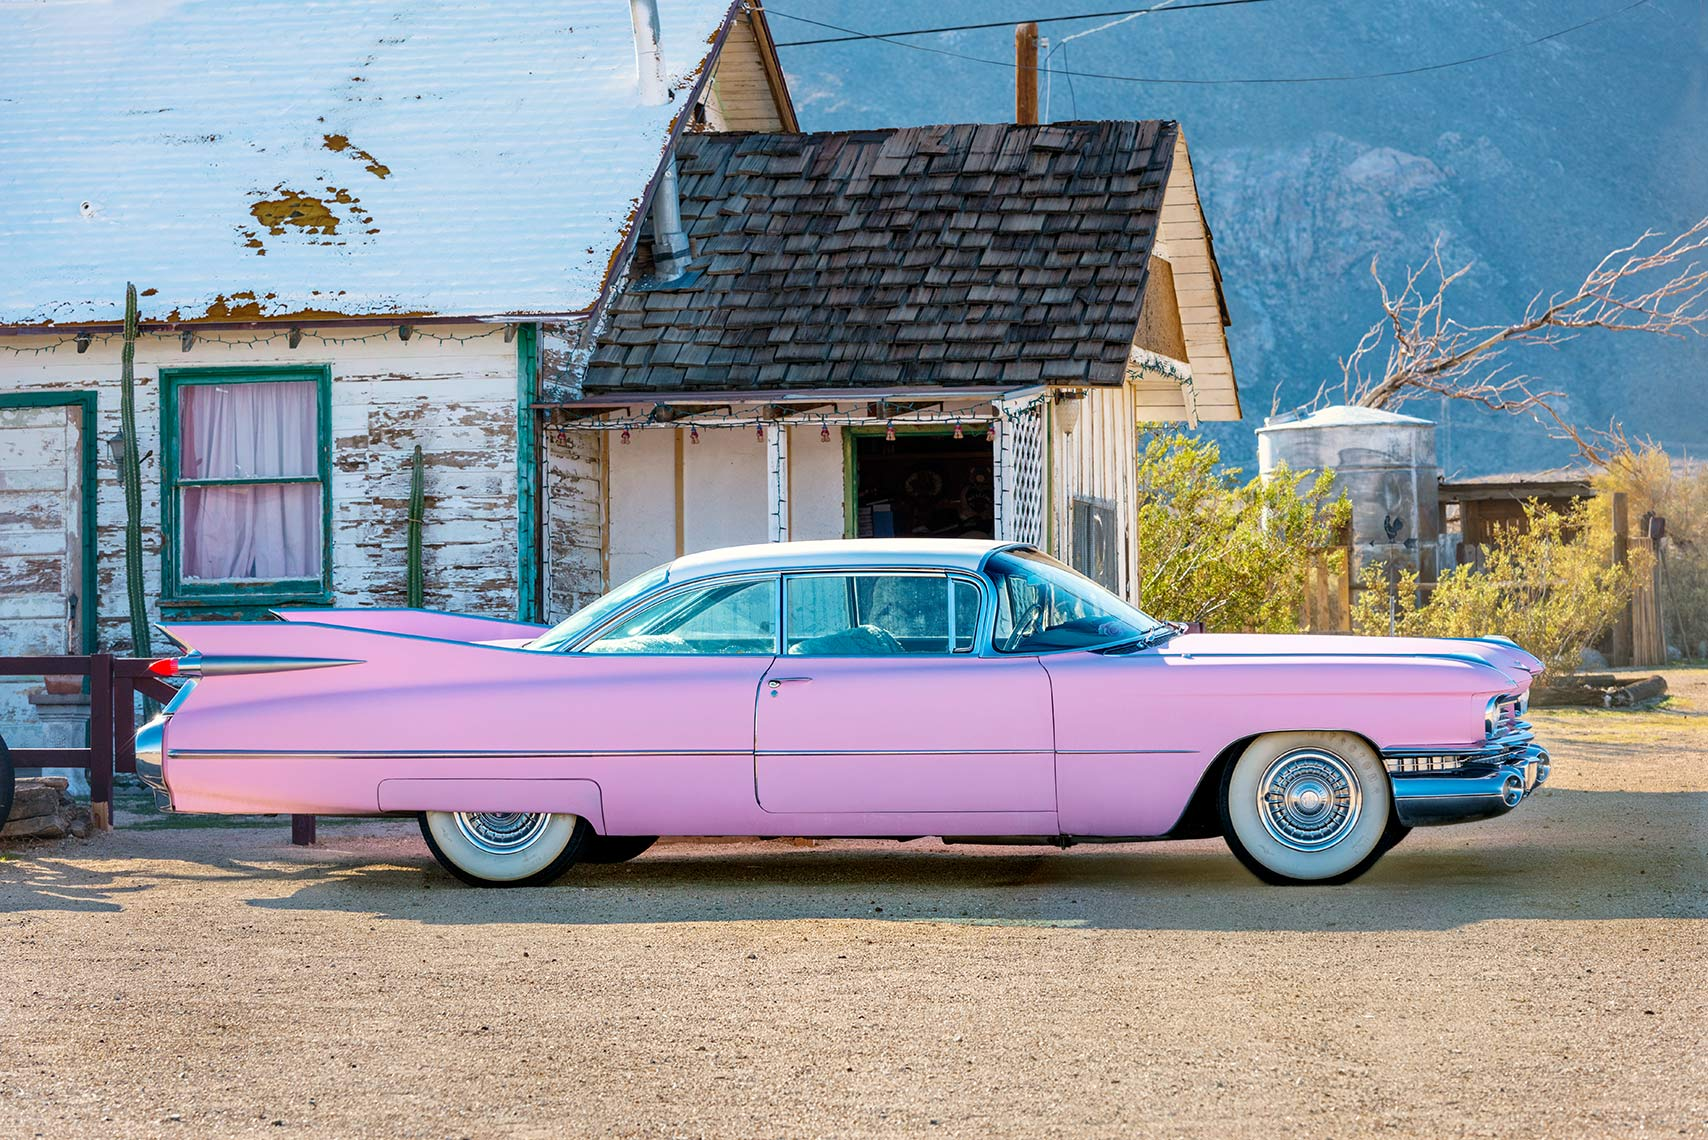 Pink Cadillac-Jerry Lee Lewis-Bruce Springsteen-Clint Eastwood-Genearal Motors-classic cars